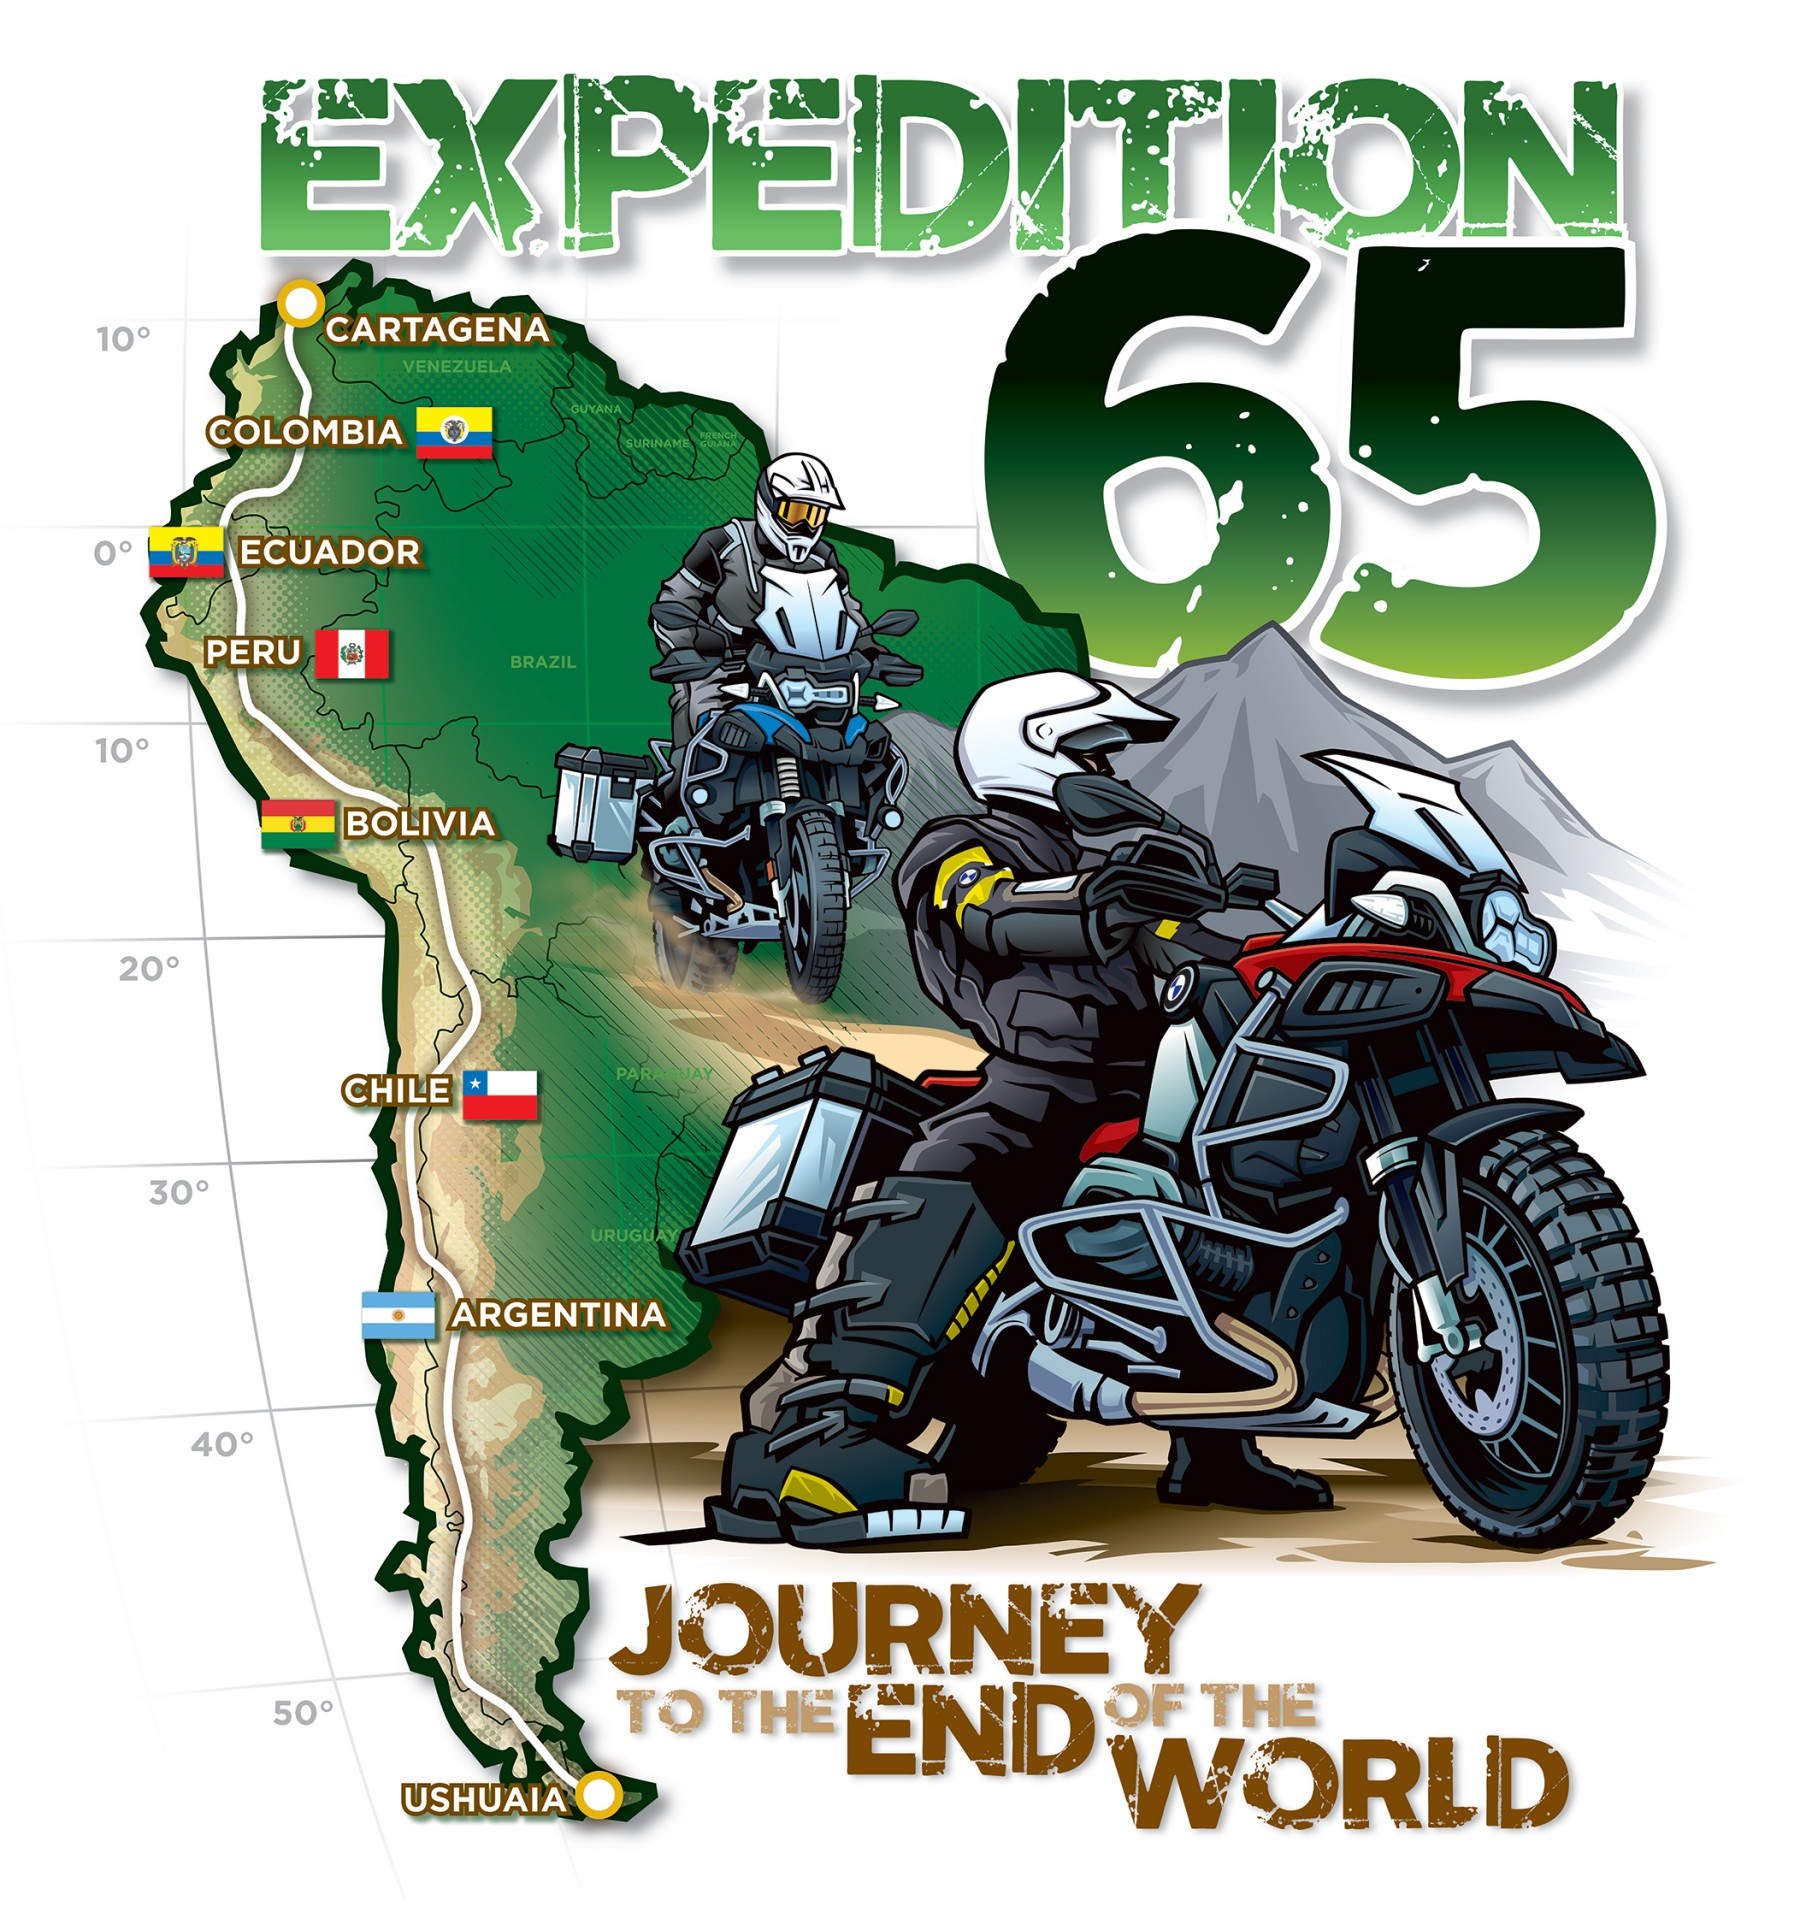 expedition65logopr.jpg